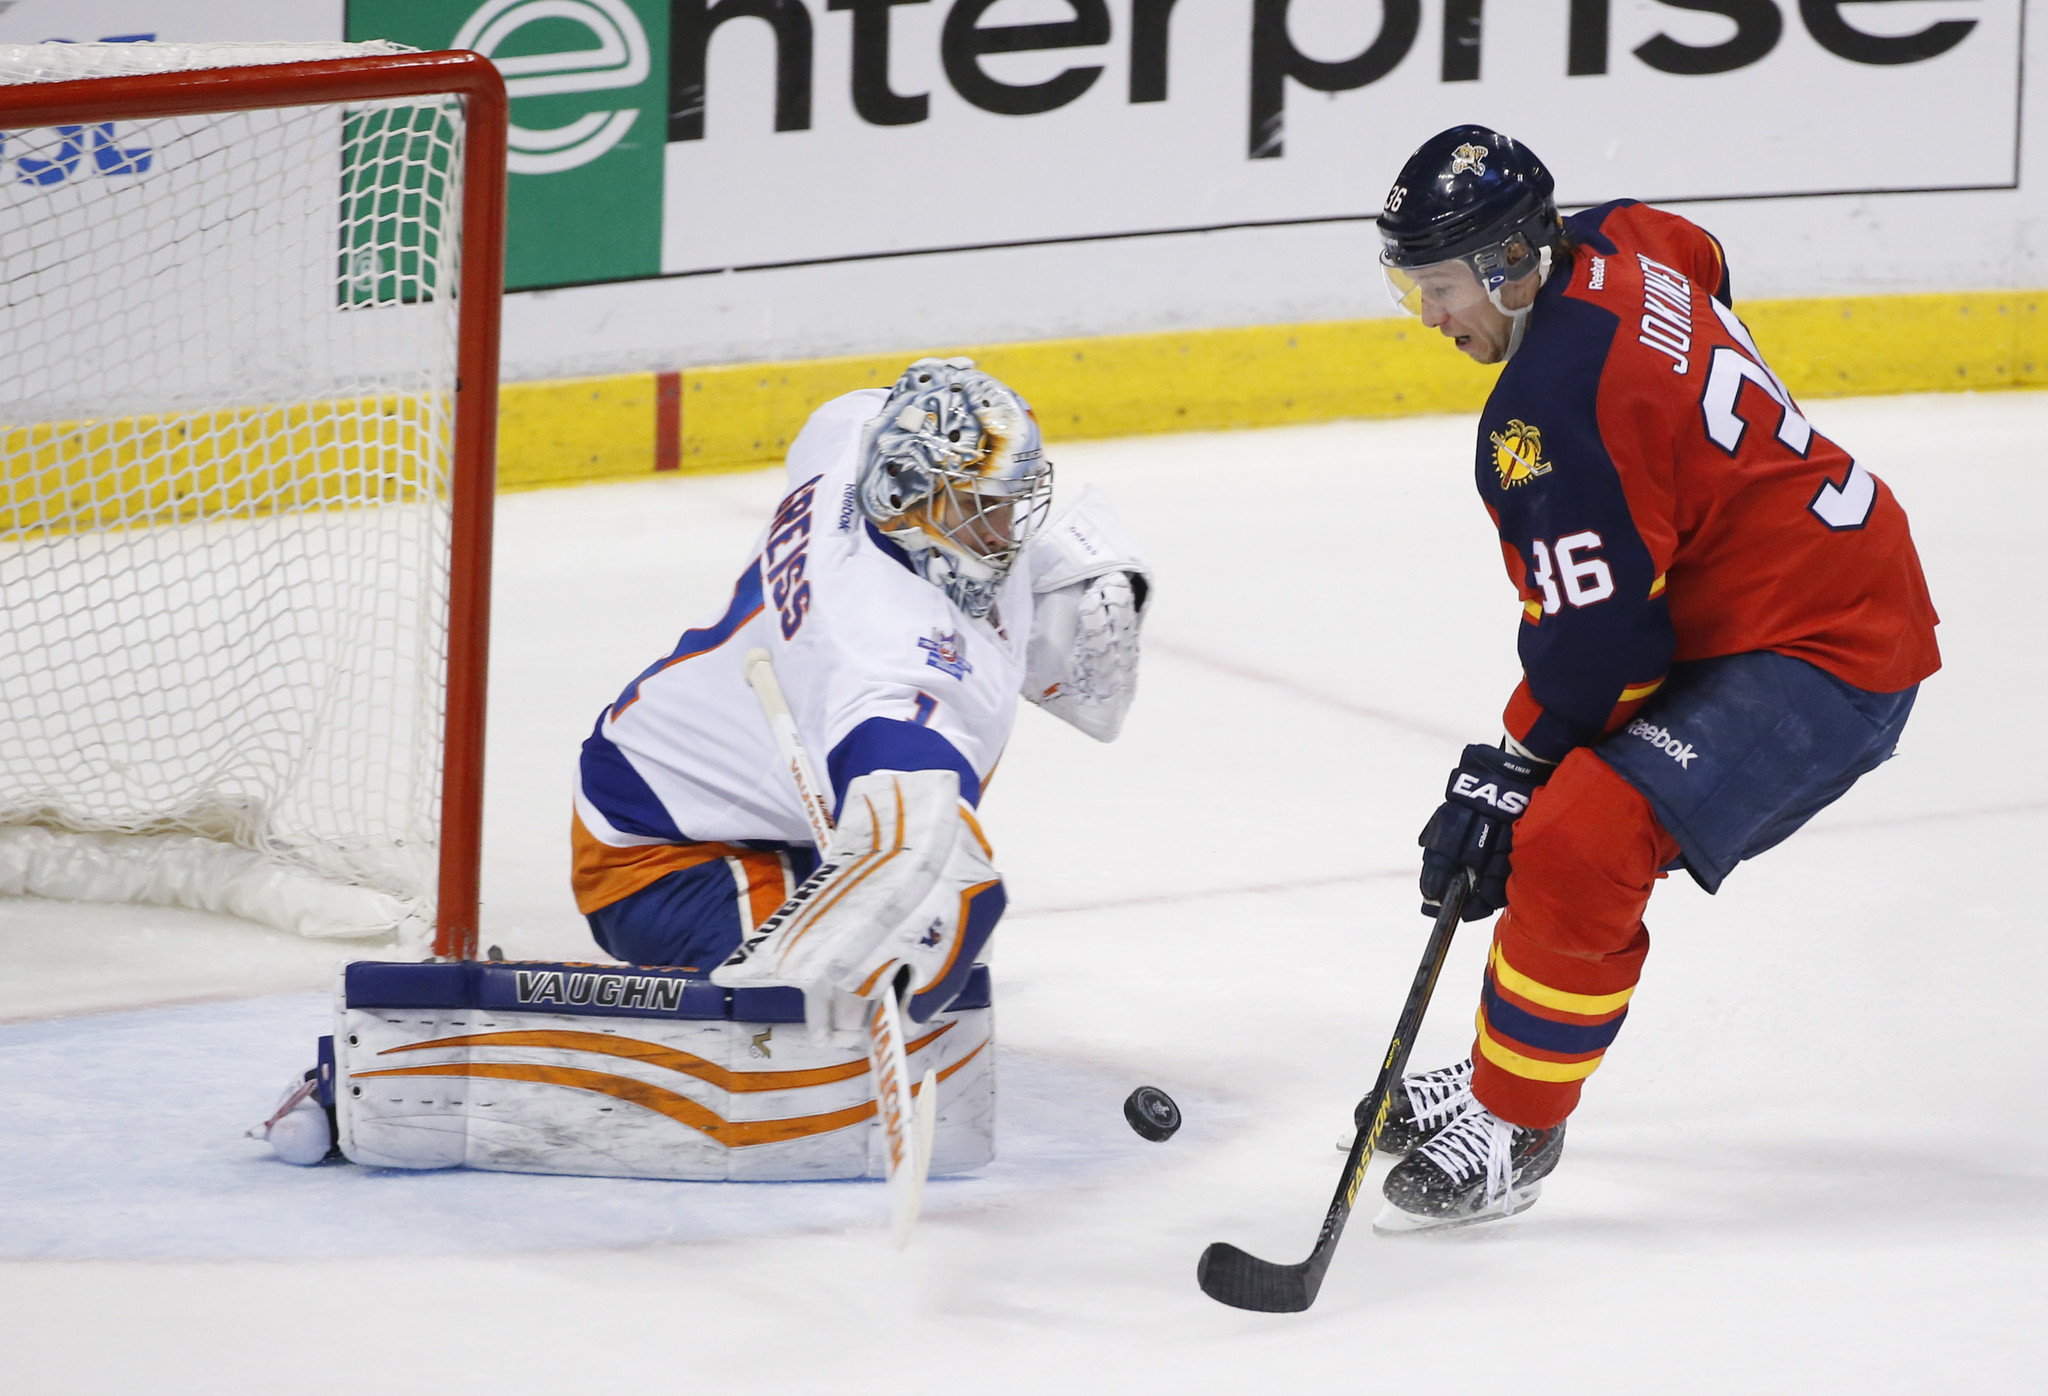 Sfl-jokinen-on-game-6-i-like-our-chances-tonight-20160424